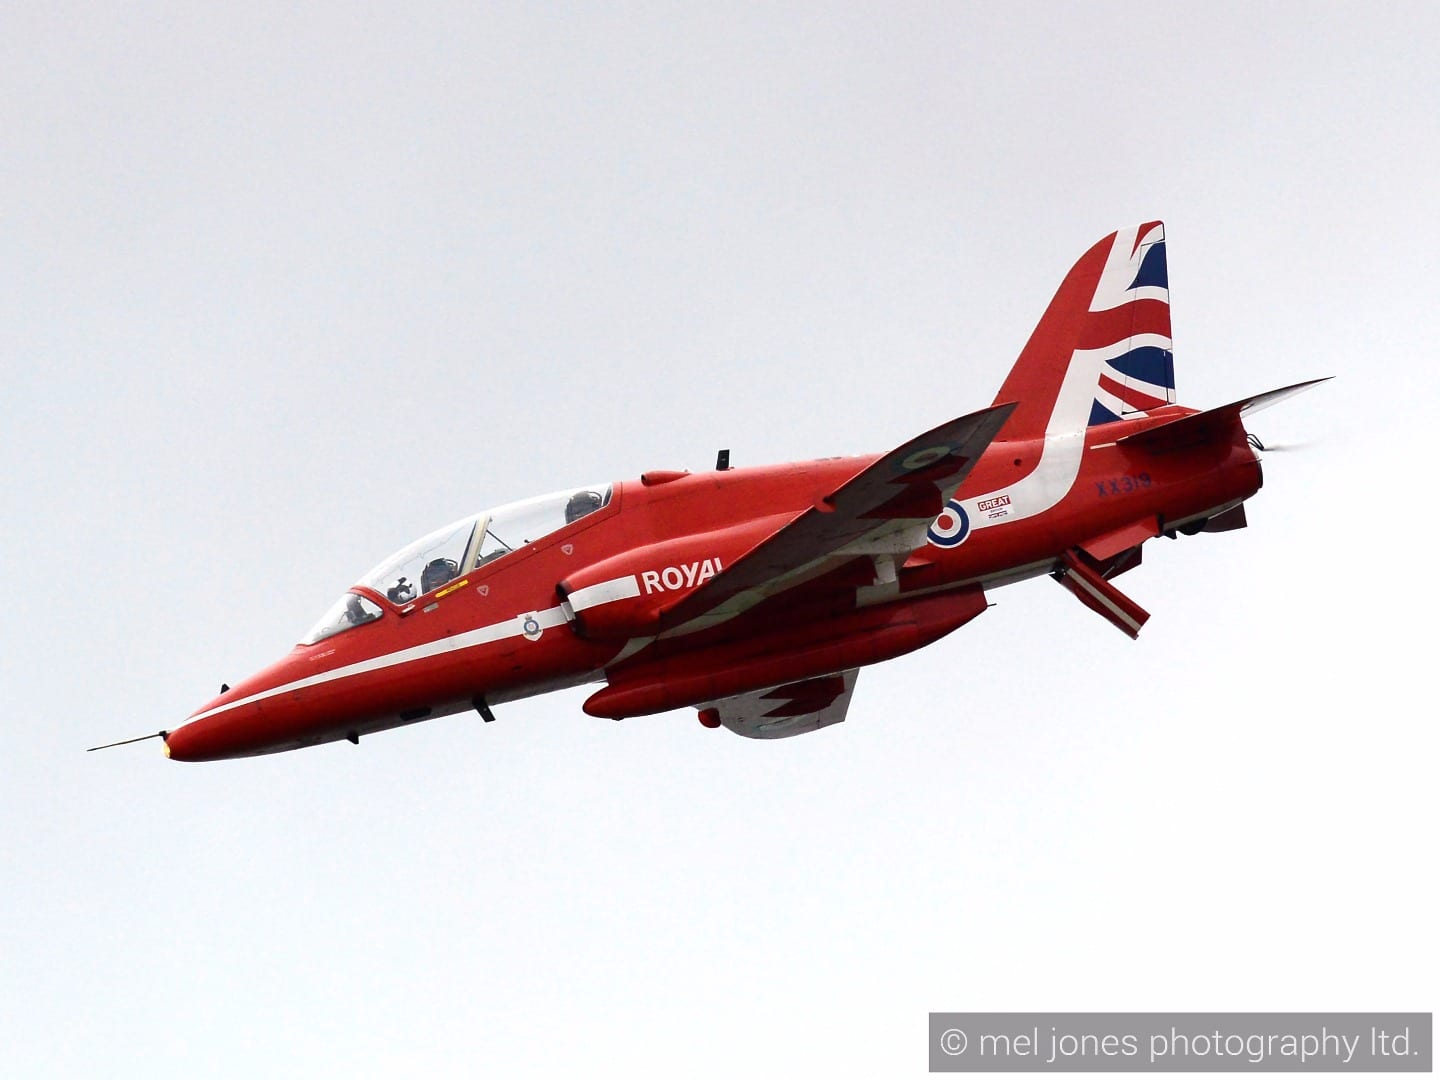 Red Arrows jet at Blackpool Airshow 2015, Mel Jones Photography